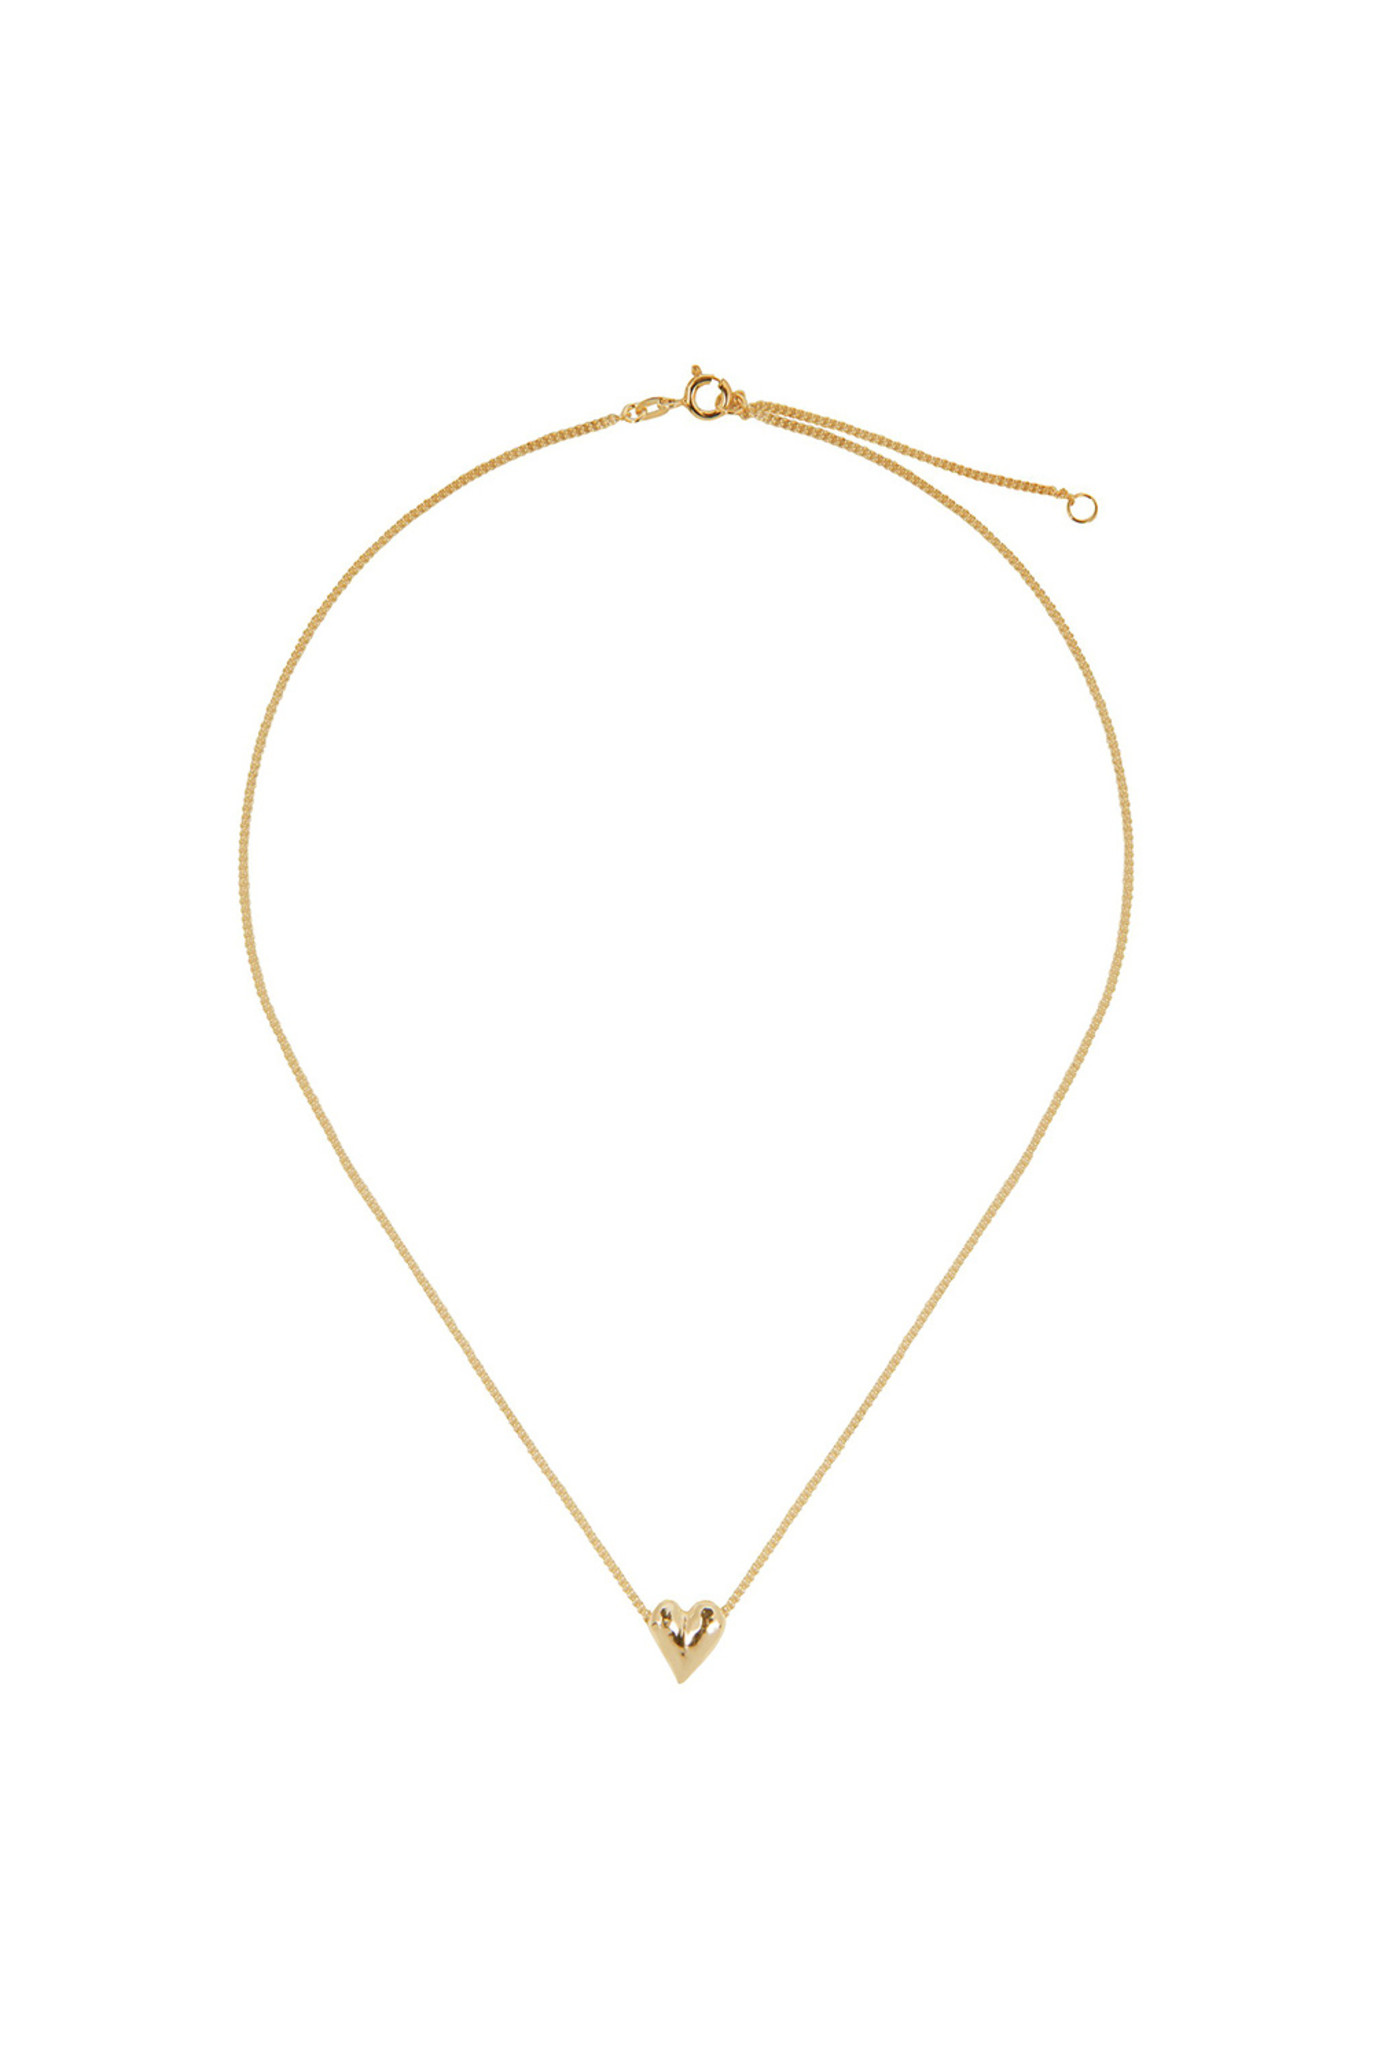 Heart necklace goldplated